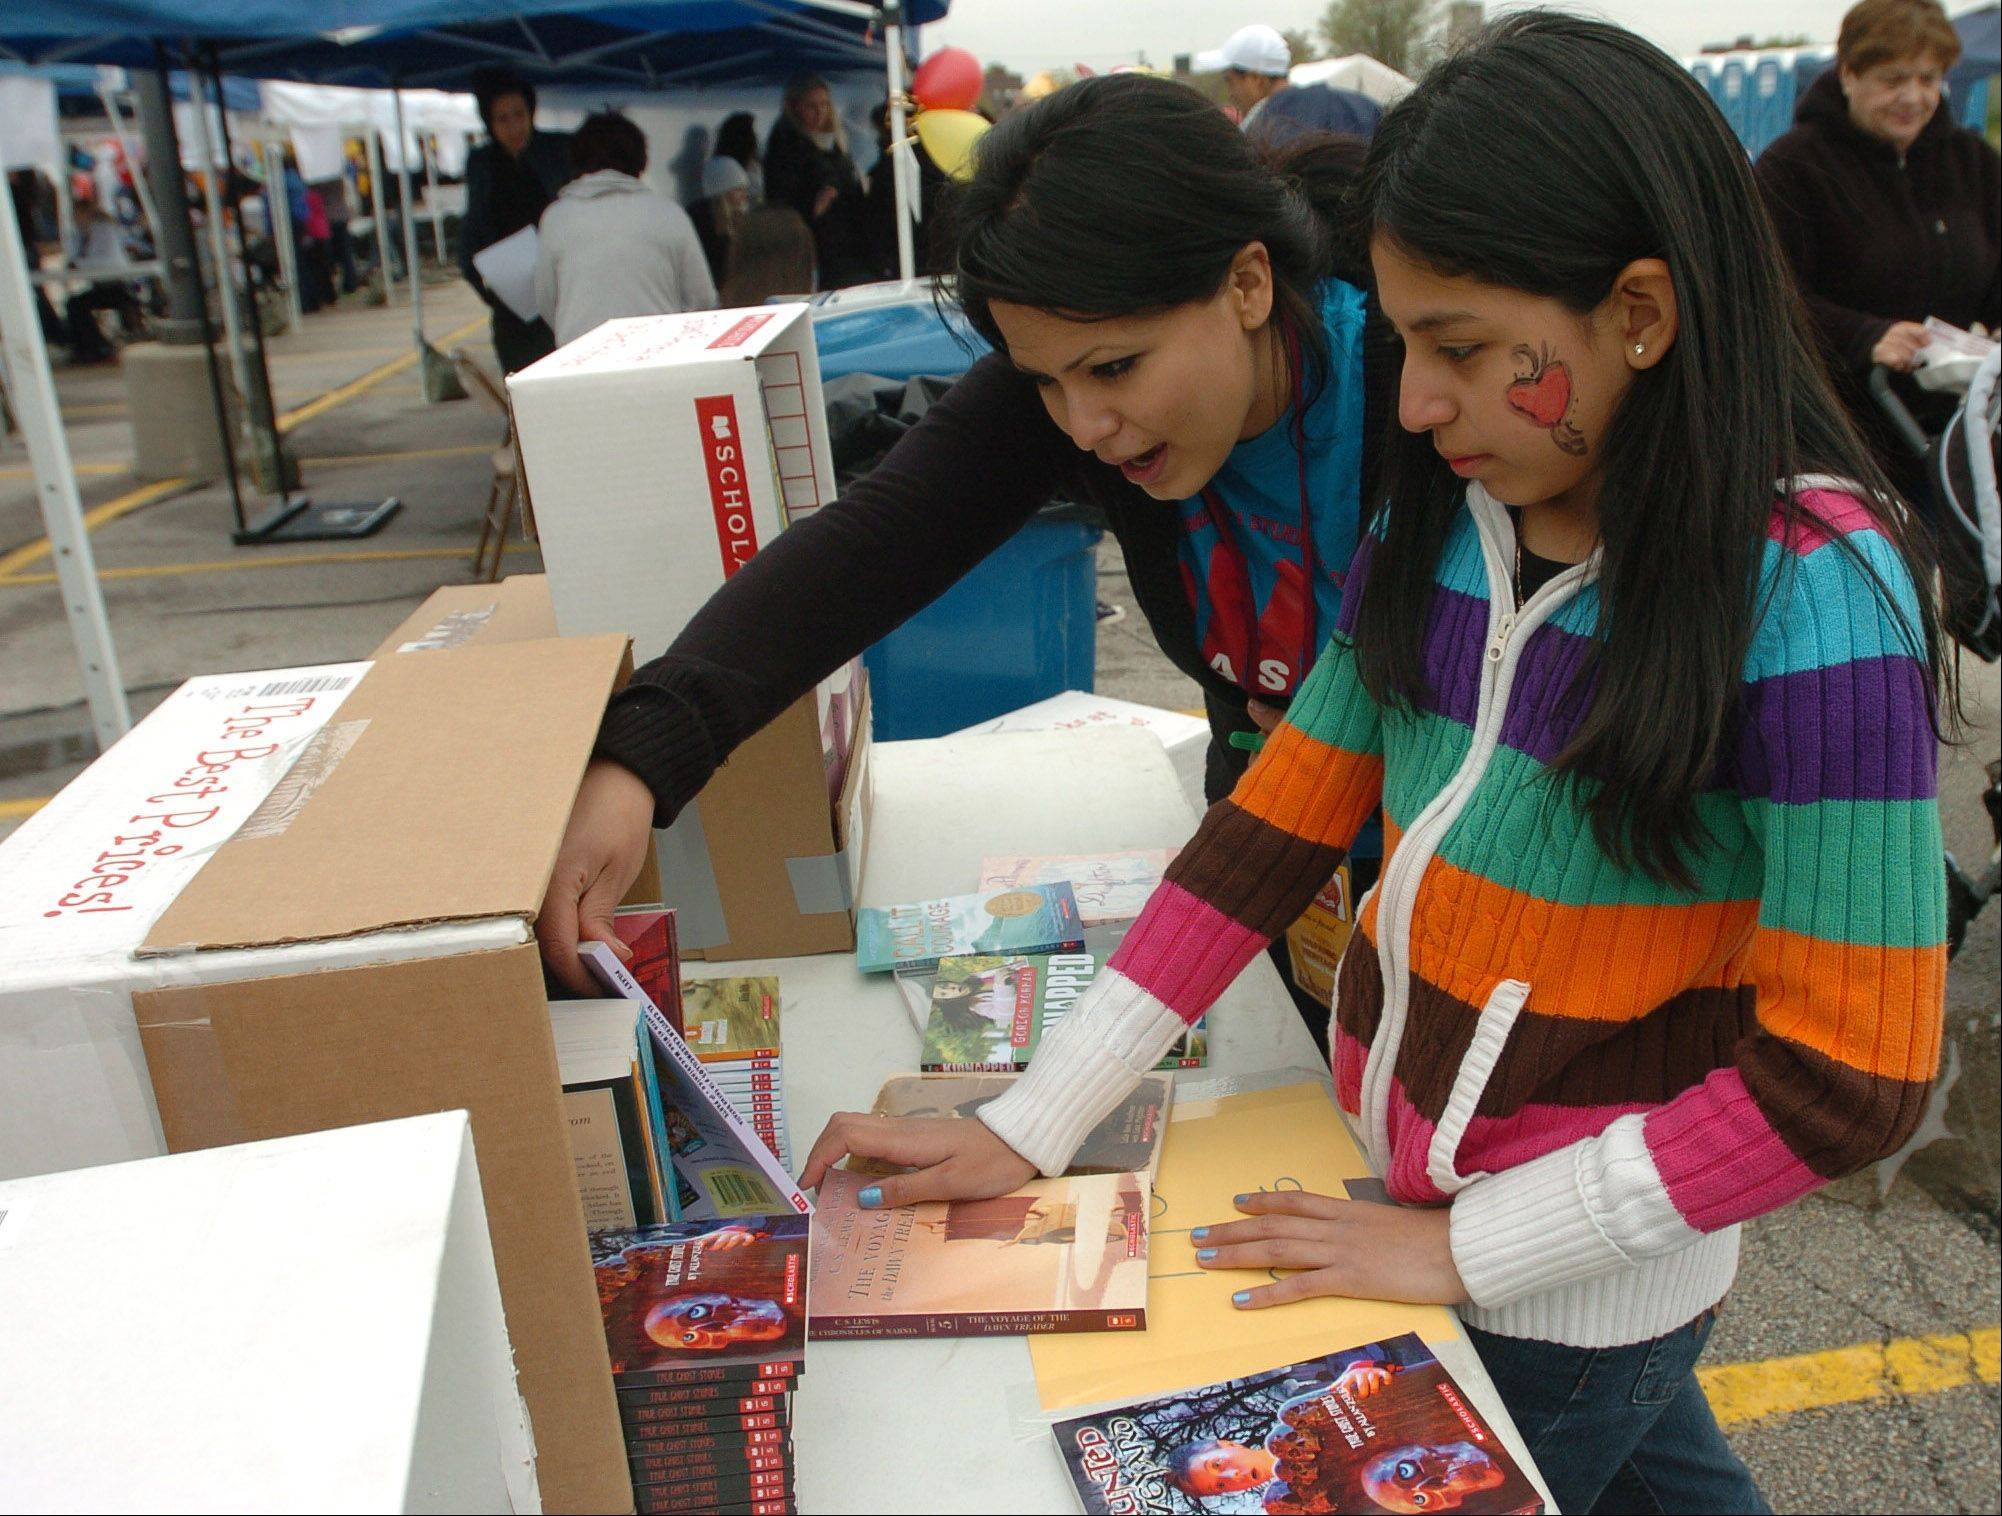 Crystal Sosa of Aurora University helps Lilian Martinez, 11, of Aurora, pick out a free book during the 10th annual El Dia de los Ninos or The Day of the Children literacy festival Saturday in Aurora.